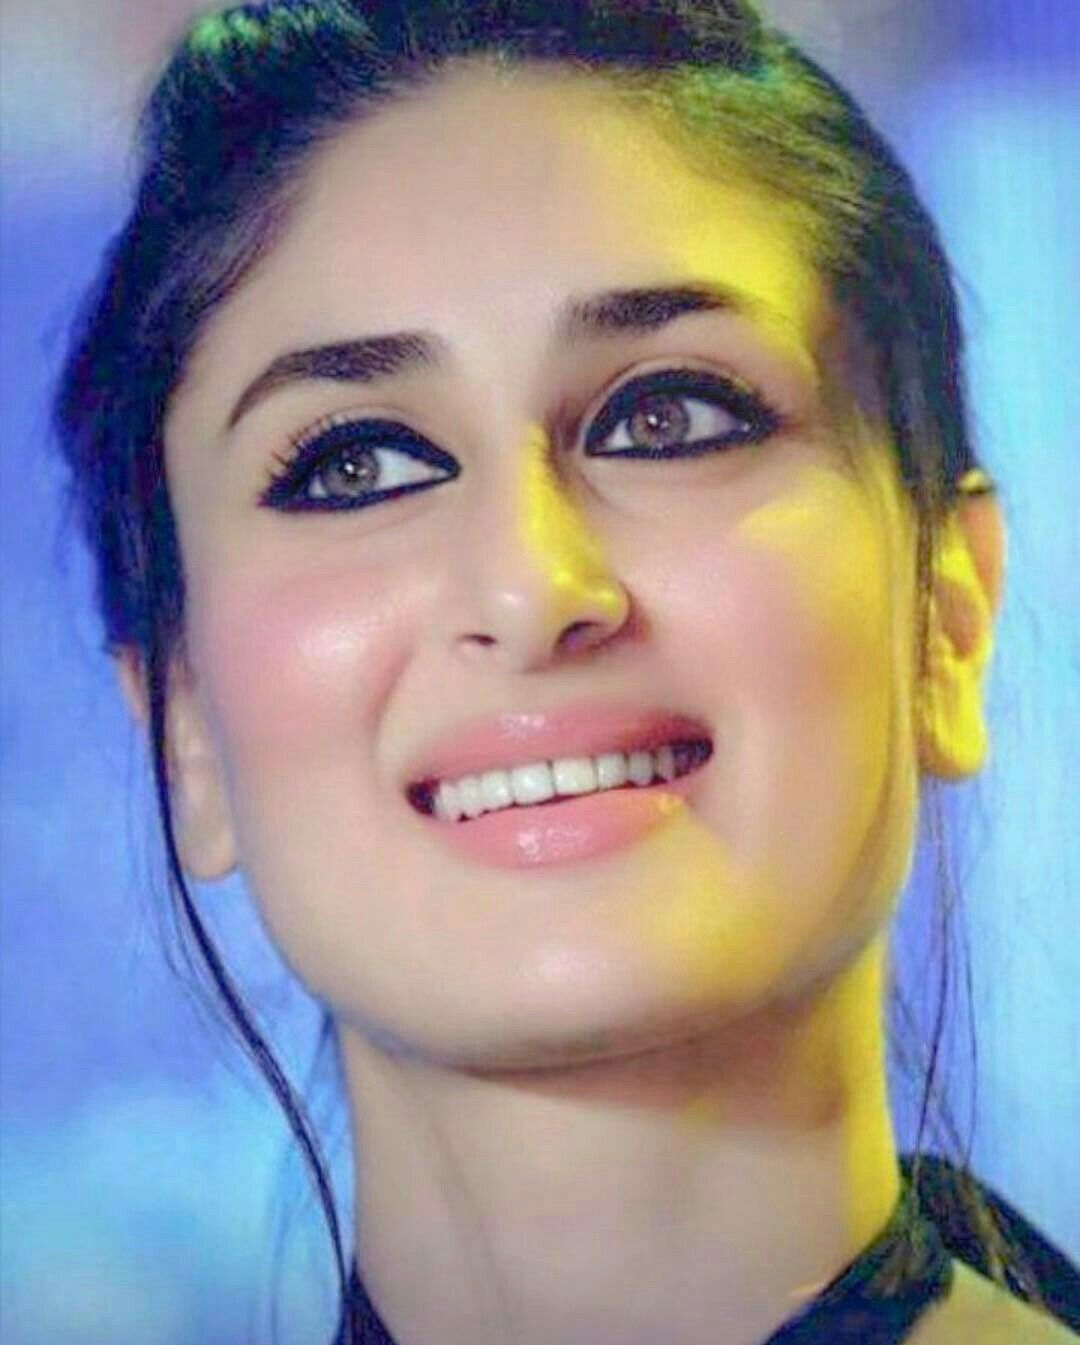 Kareena Kapoor Stunning Look Kareena Kapoor Beautiful Pics Kareena Kapoor Pics Bollywood Celebrities Indian Bollywood Actress